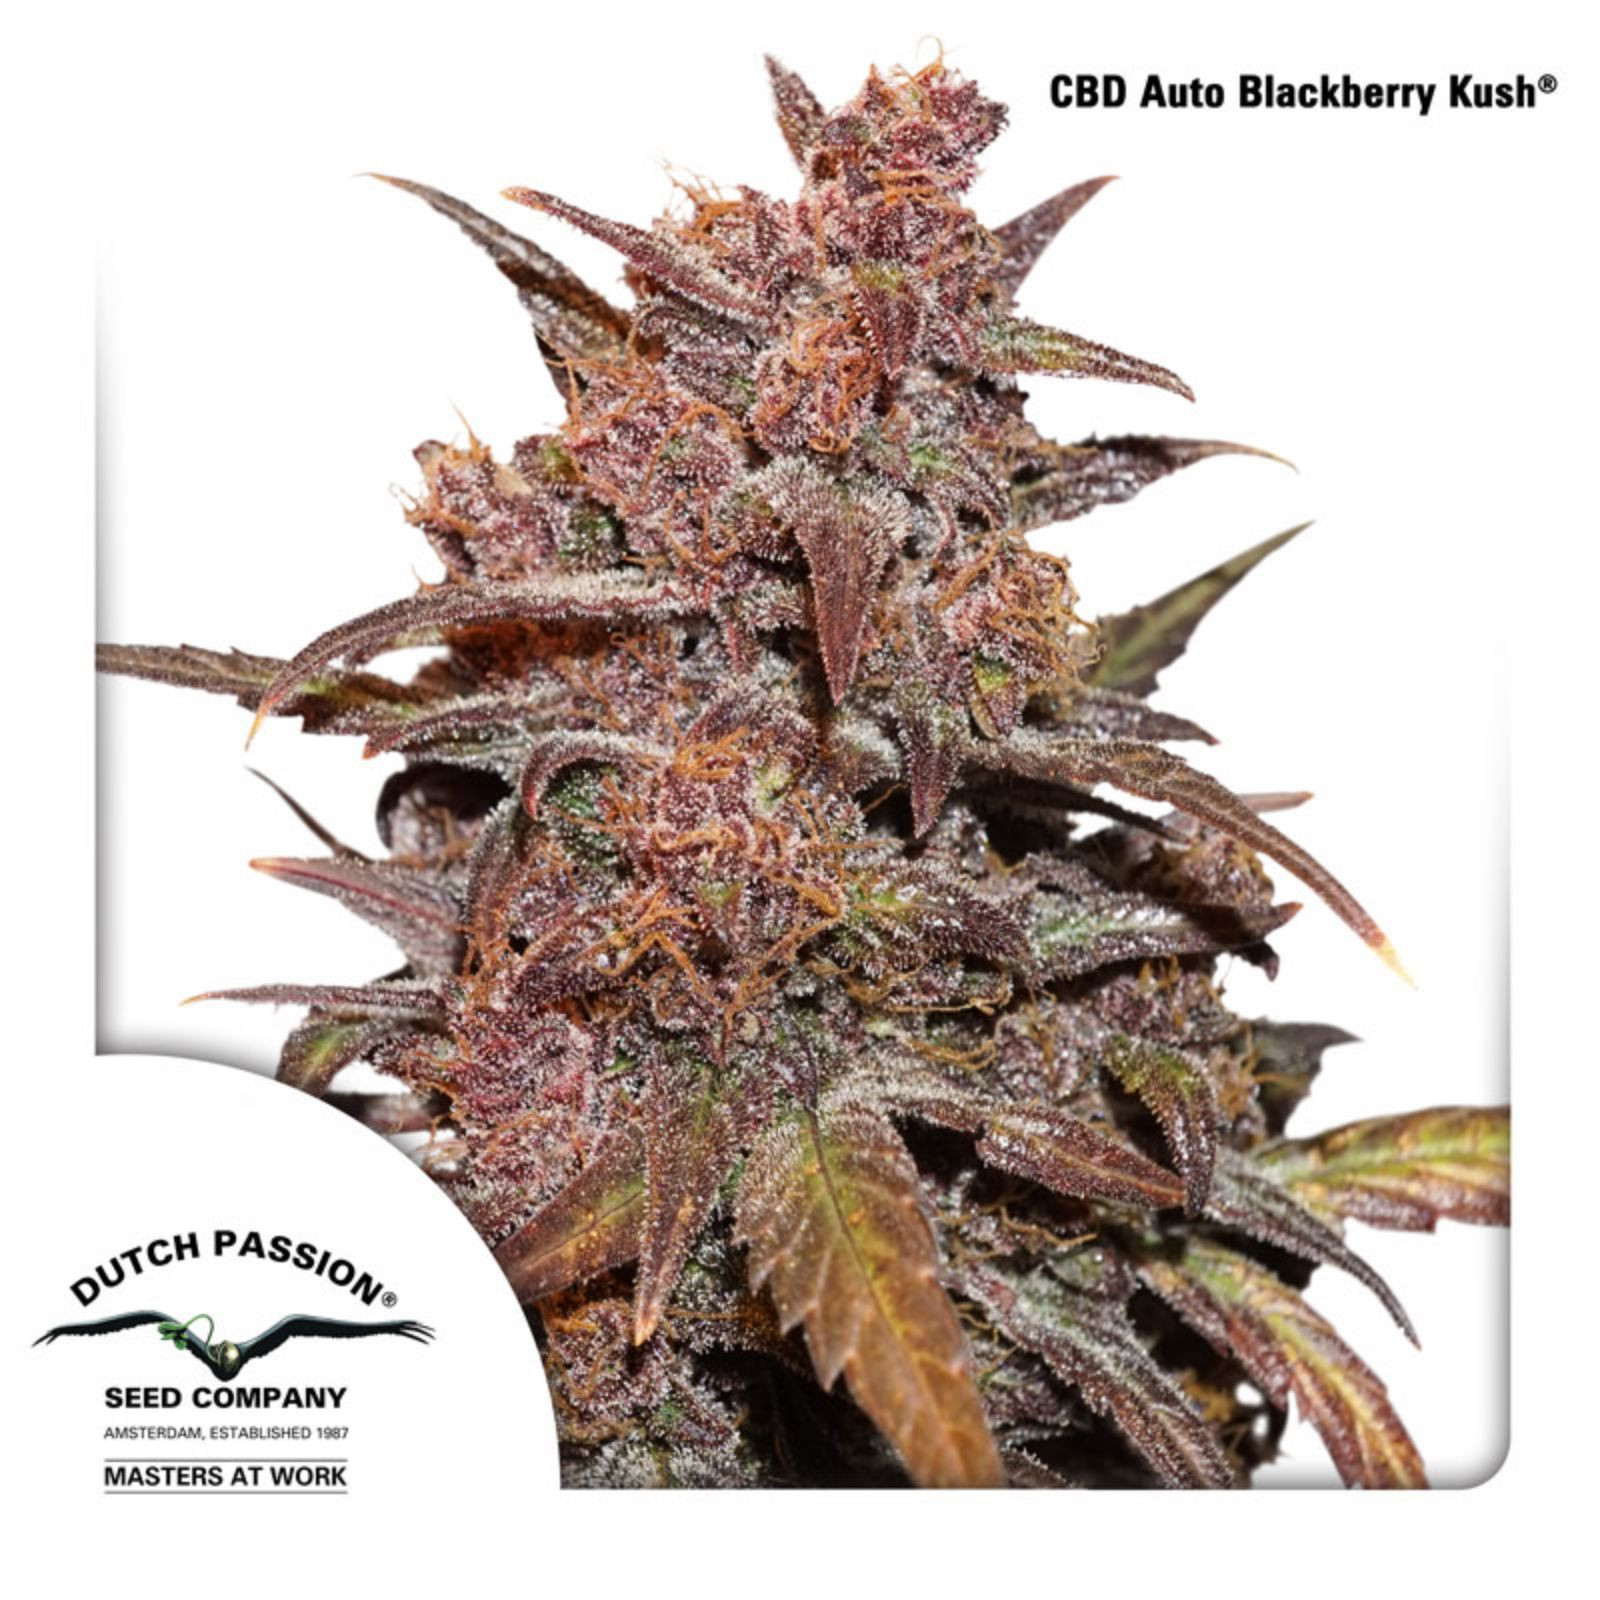 Dutch Passion – CBD Auto Blackberry Kush